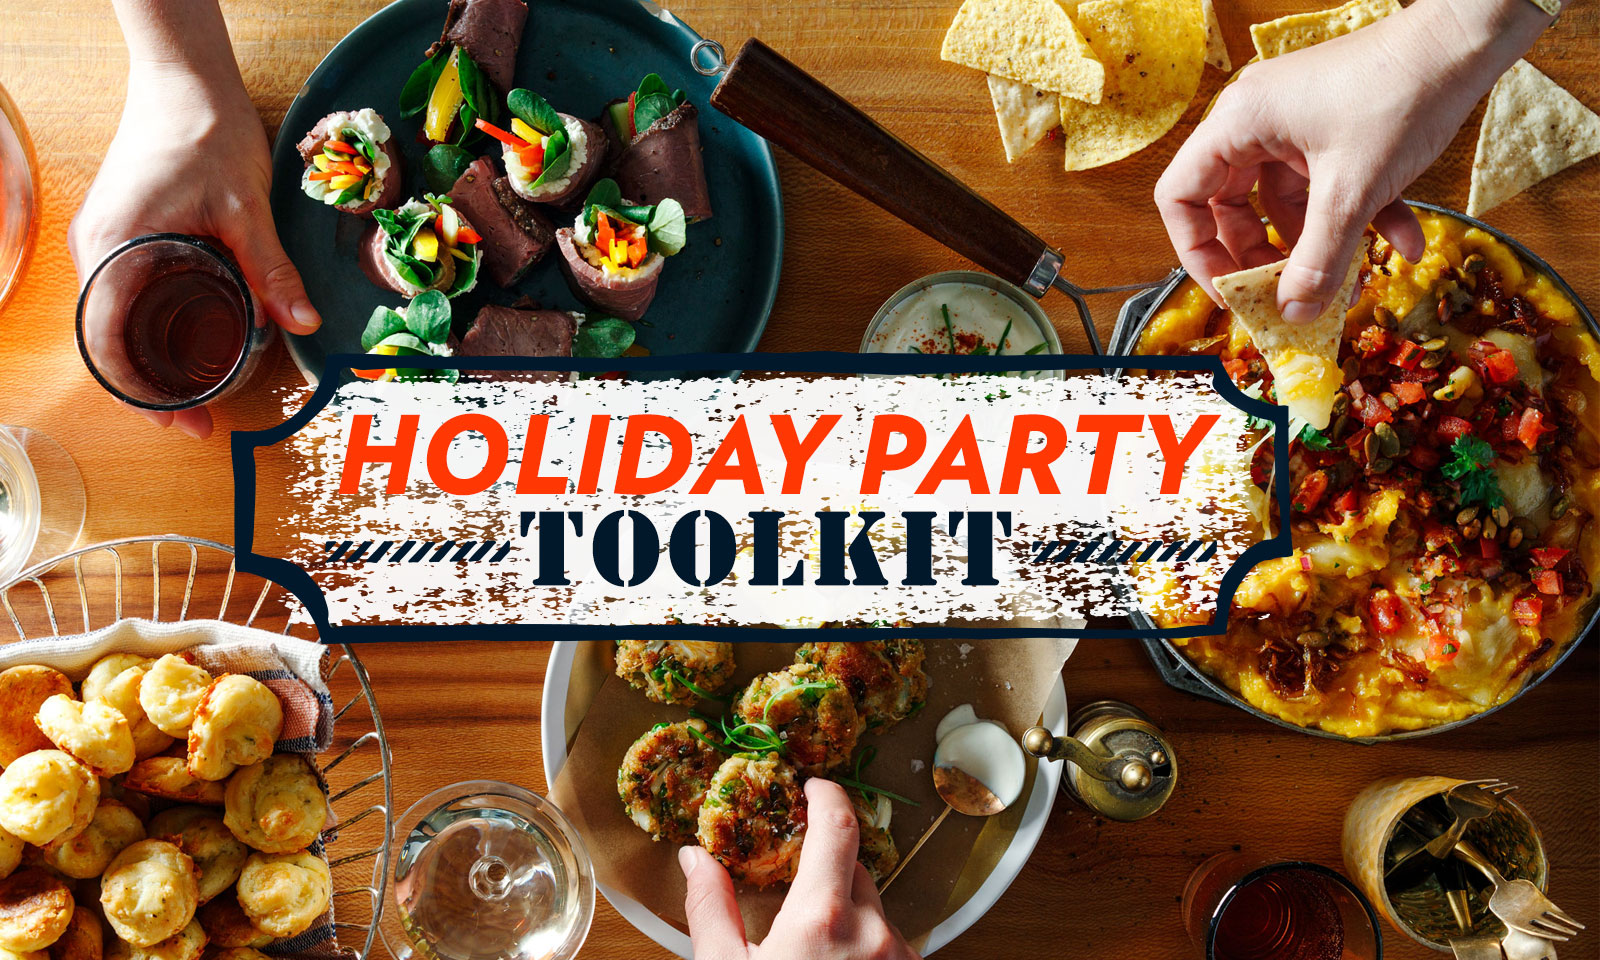 Your Holiday Party Toolkit